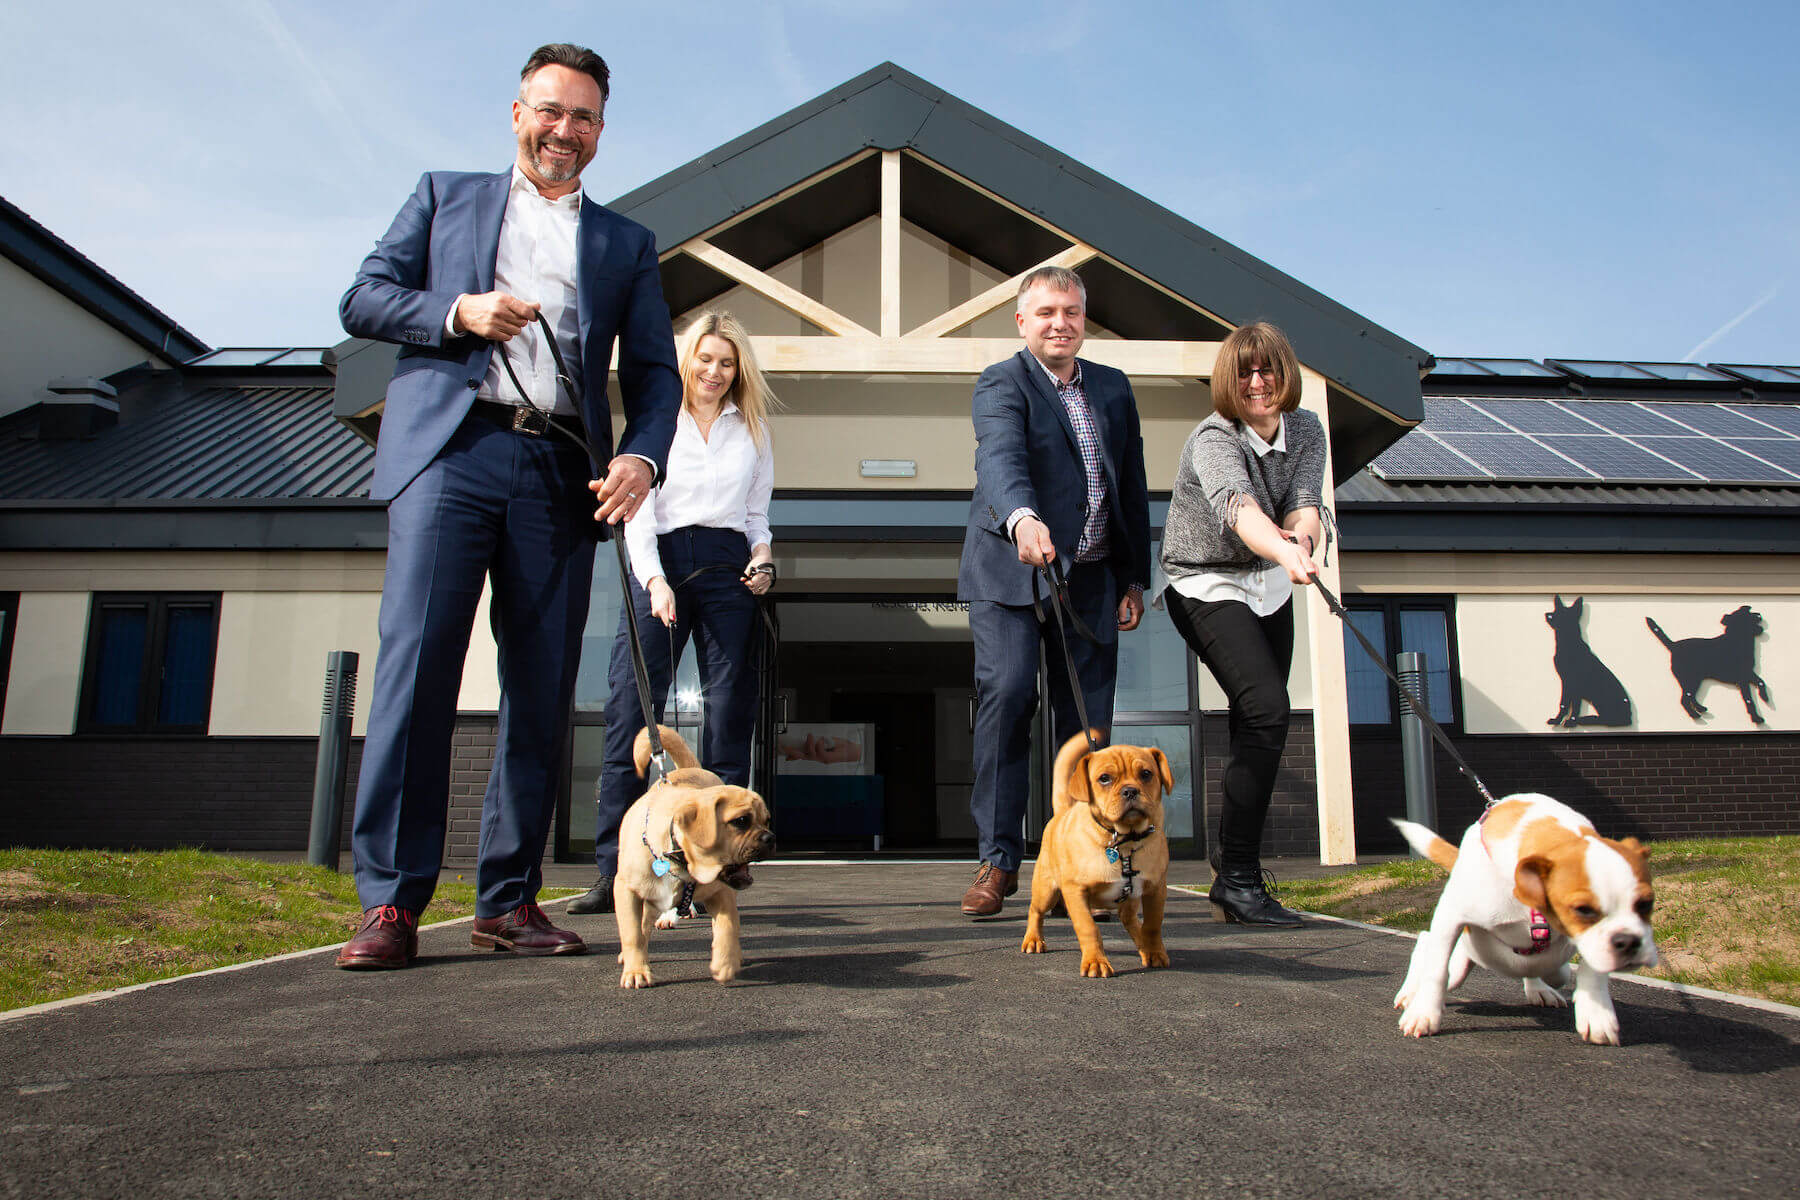 Walkies! Integra Buildings Managing Director Gary Parker, left, and Commercial Director Chris Turner with Centre Manager Ella Carpenter, second left, and Rachel Jenkins, of Williams Architects, take some of RSPCA Radcliffe's residents for a stroll.